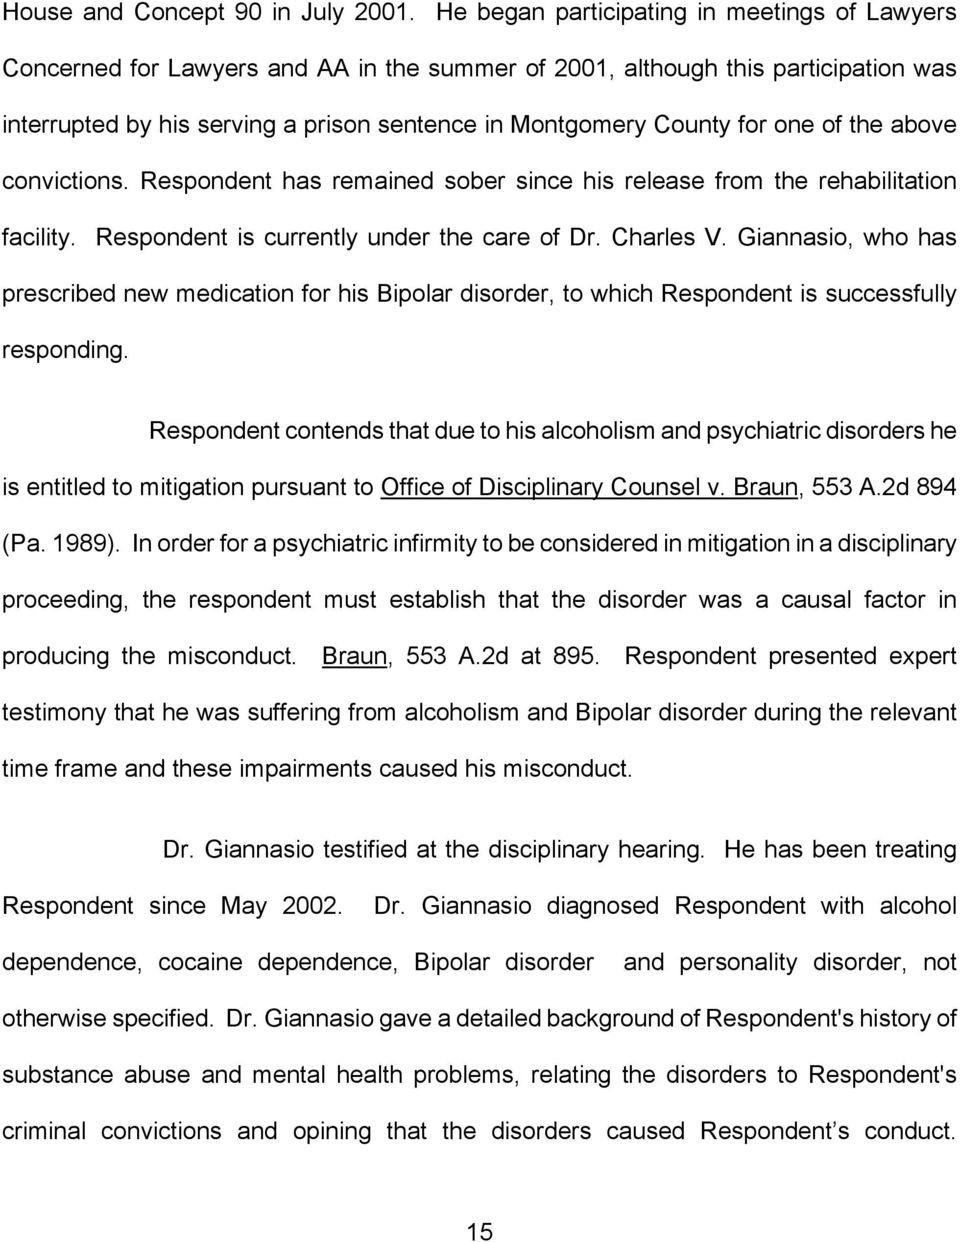 one of the above convictions. Respondent has remained sober since his release from the rehabilitation facility. Respondent is currently under the care of Dr. Charles V.